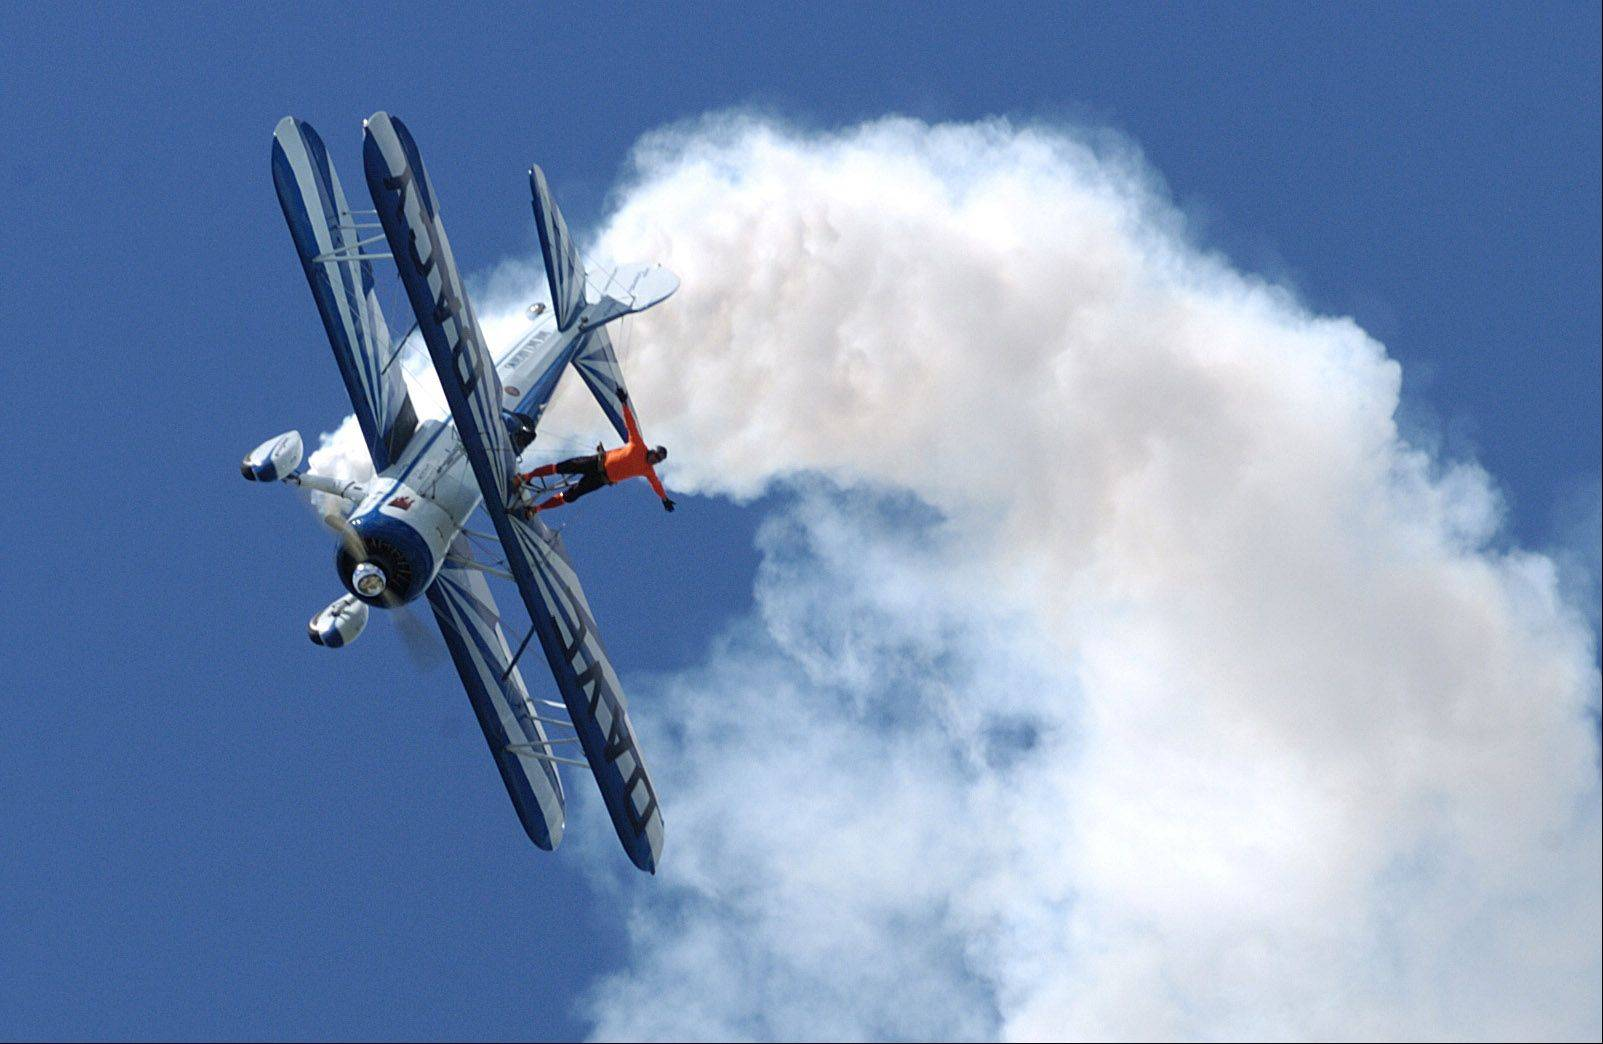 Wingwalker Tony Kazian of Dave Dacy Airshows during last year's Waukegan Air Show.